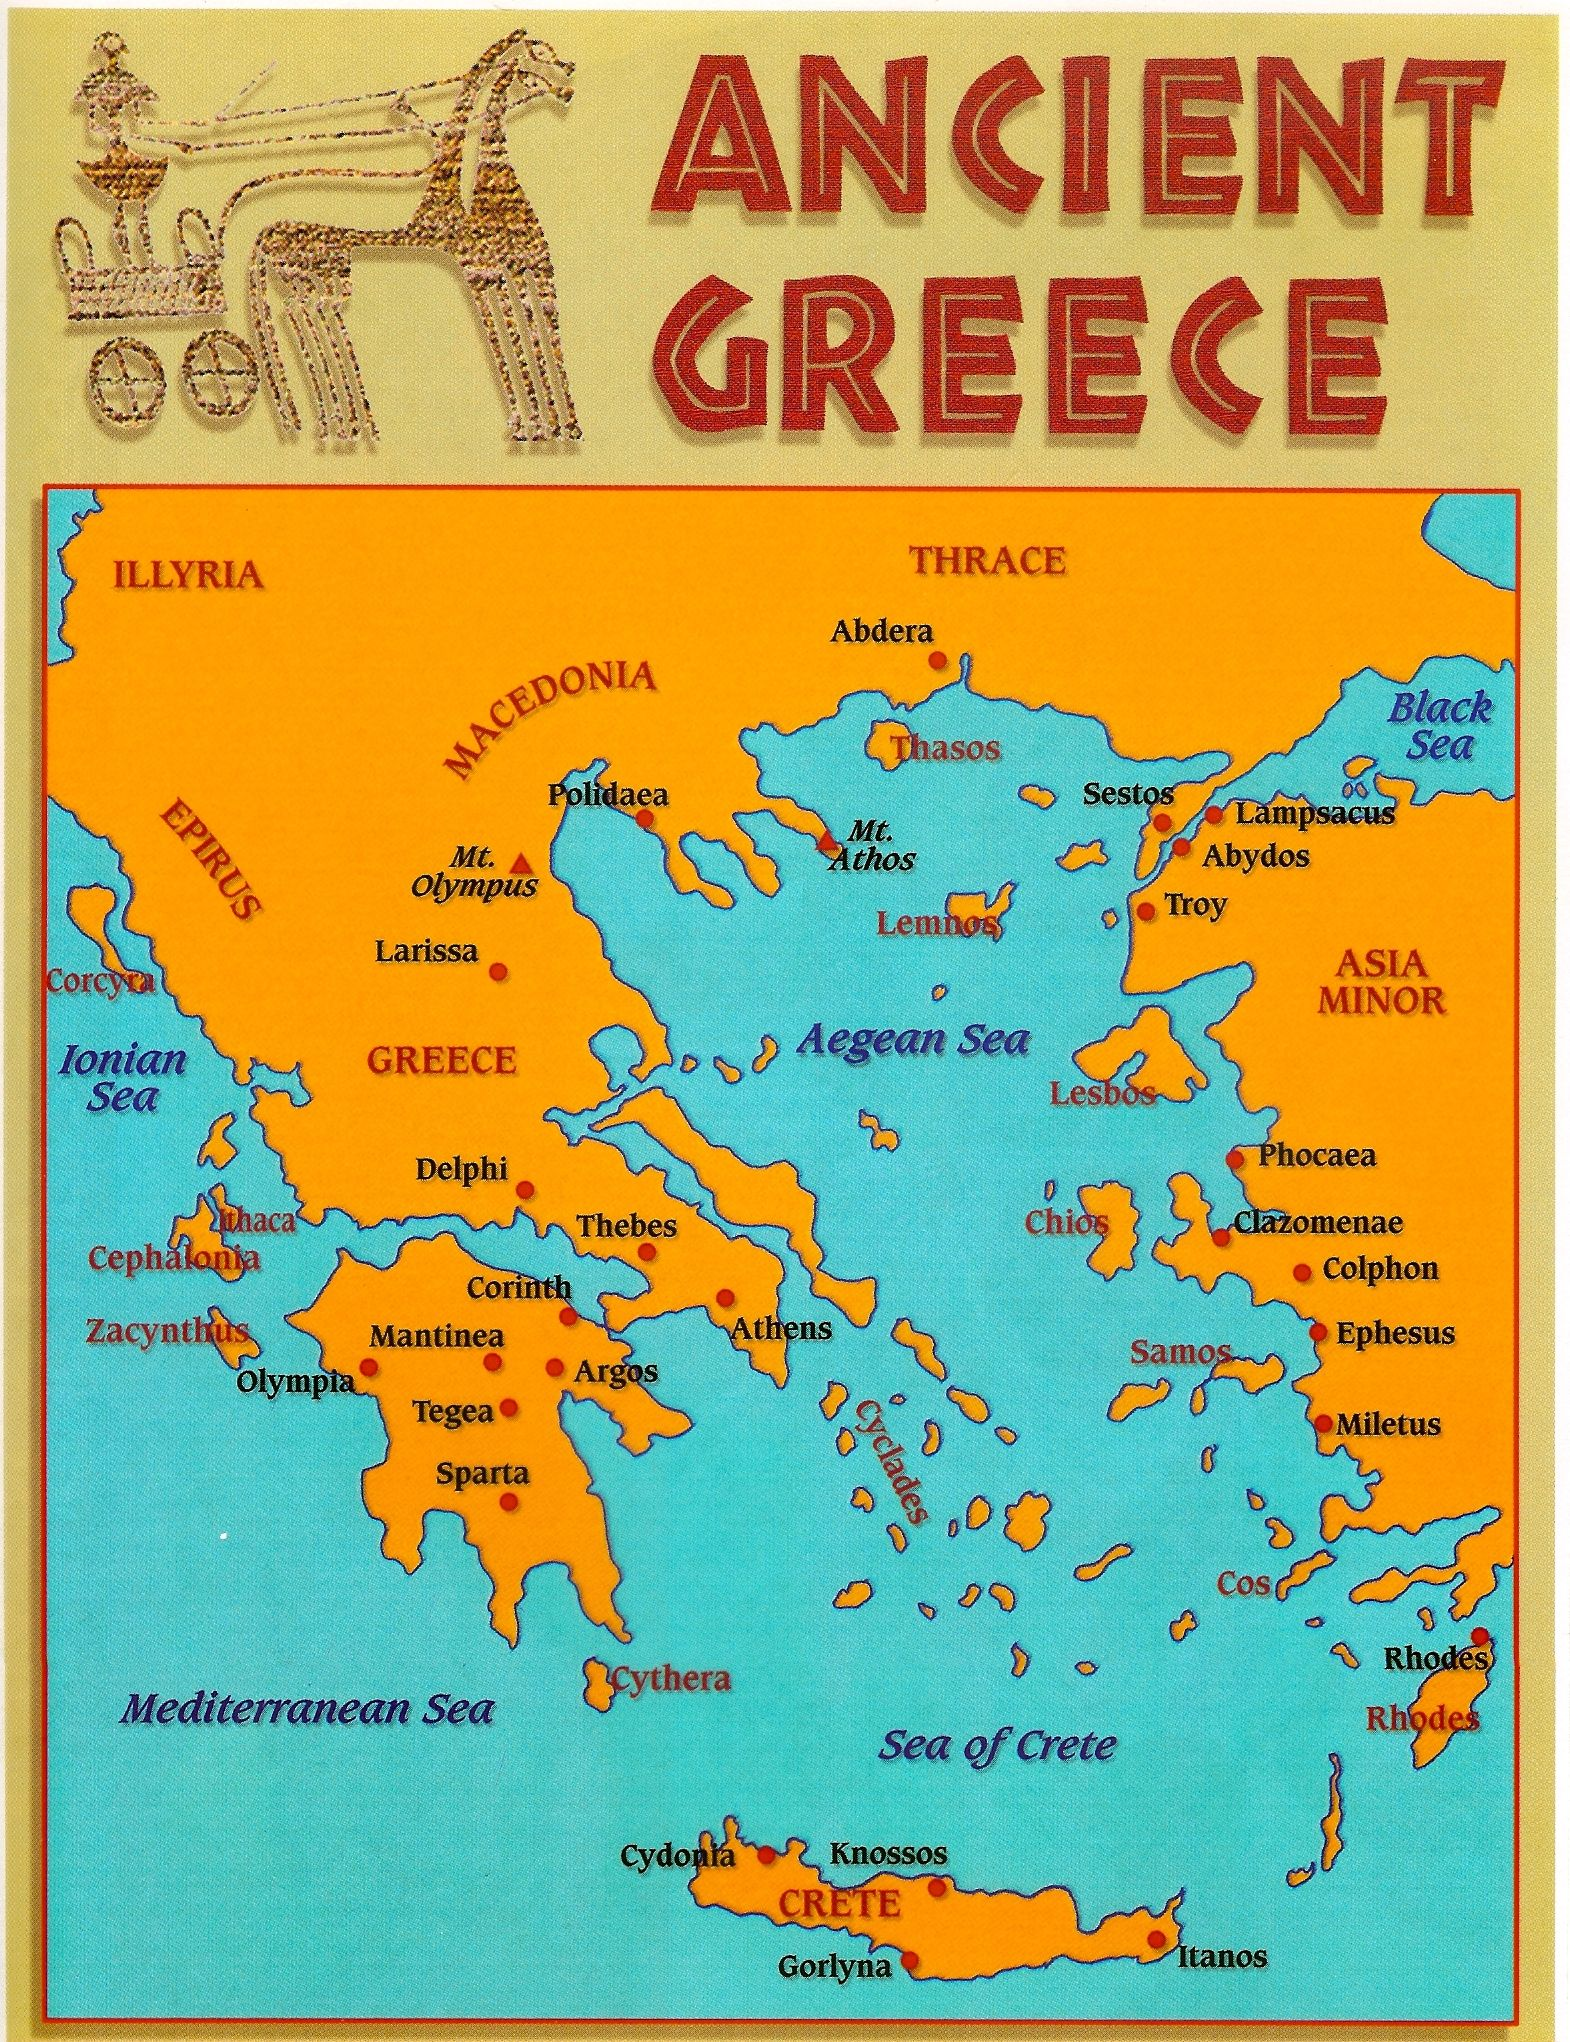 Ancient Greece Map Vs Modern Greece Map